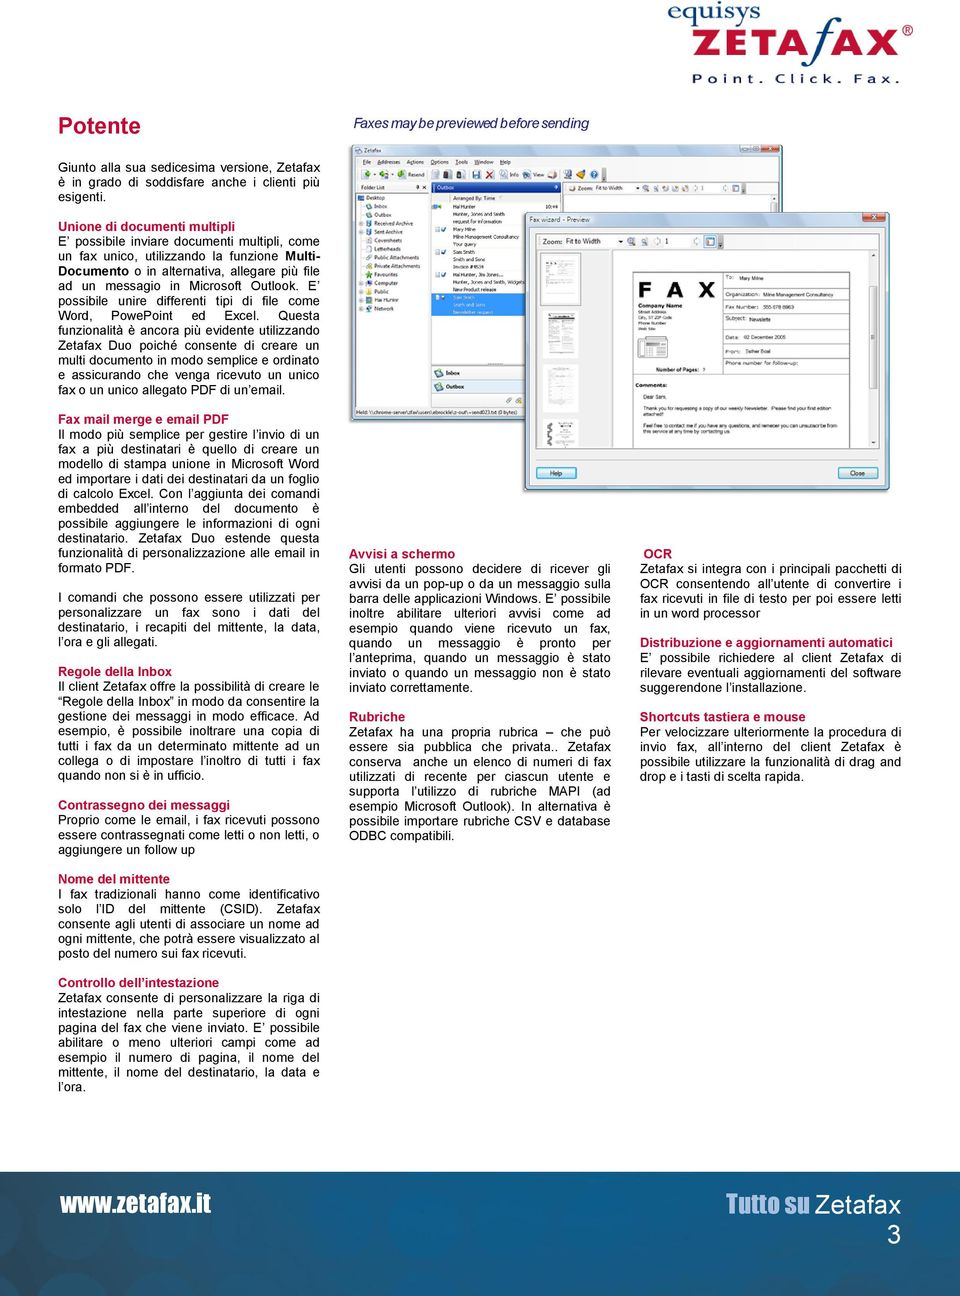 Outlook. E possibile unire differenti tipi di file come Word, PowePoint ed Excel.